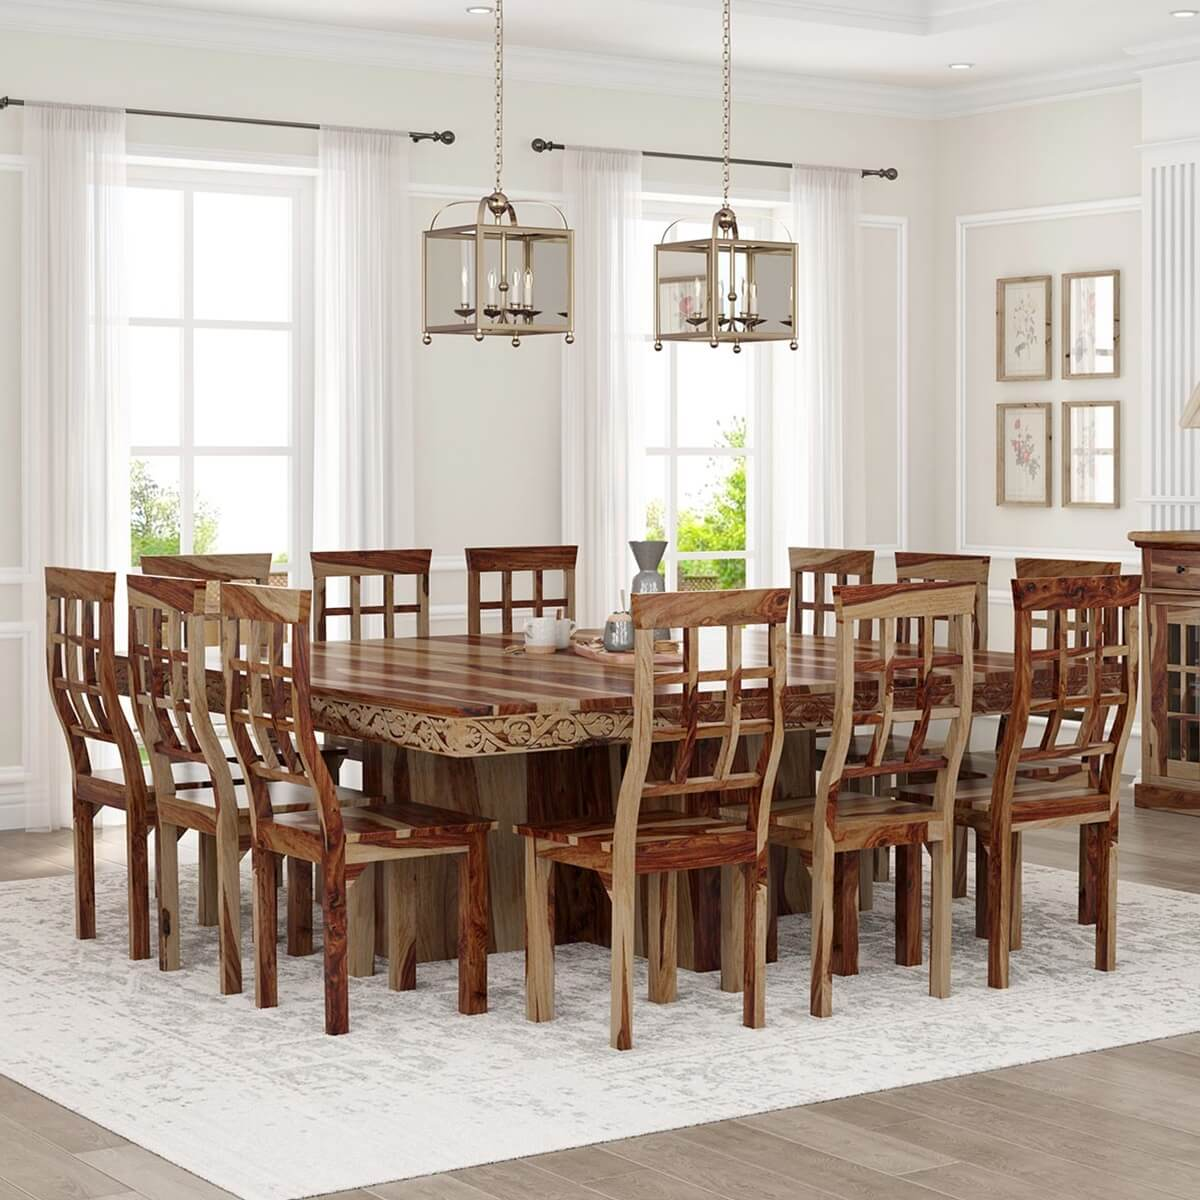 Dallas ranch large square dining room table and chair set for Big dining table in small space